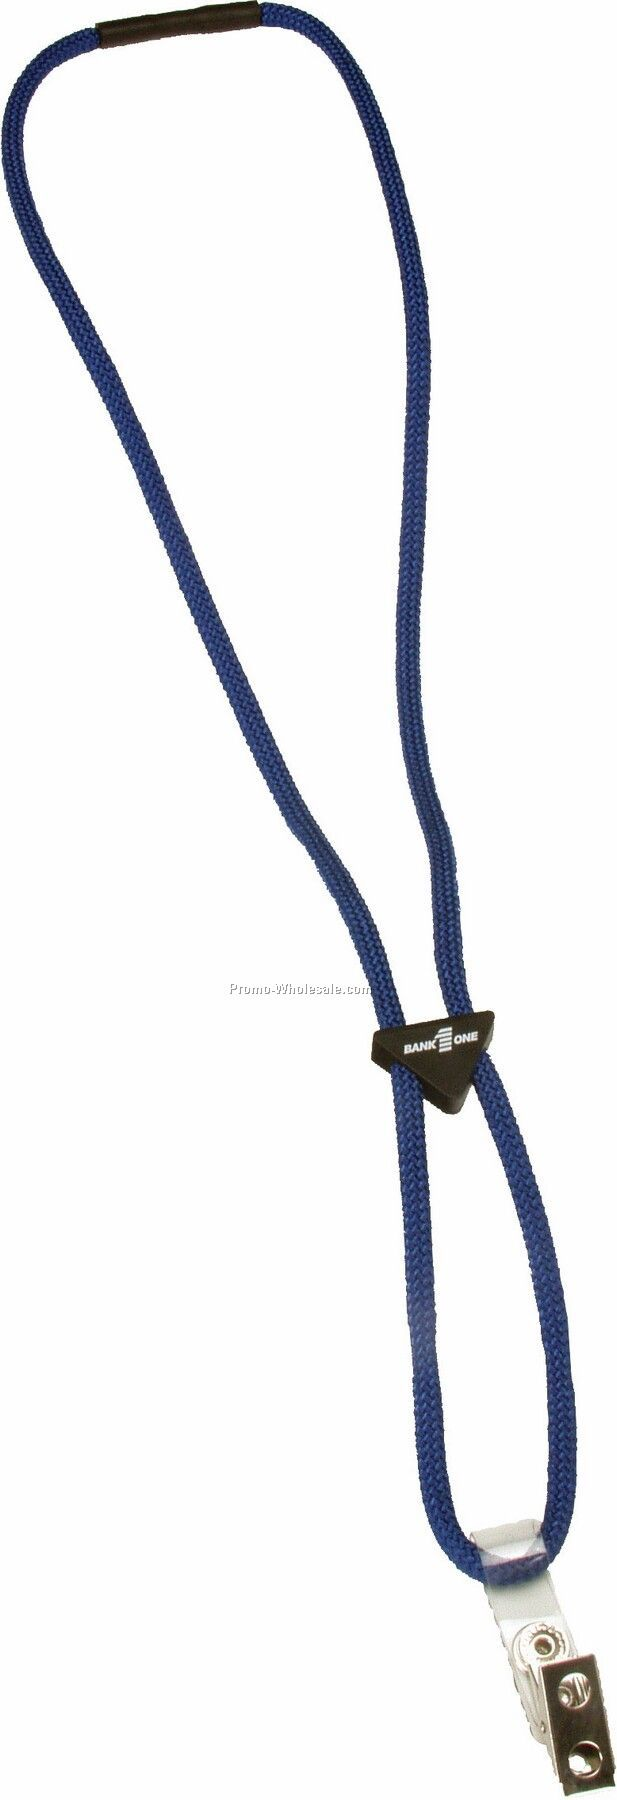 "3/8"" Sport Cord Lanyards With Triangle Slider"